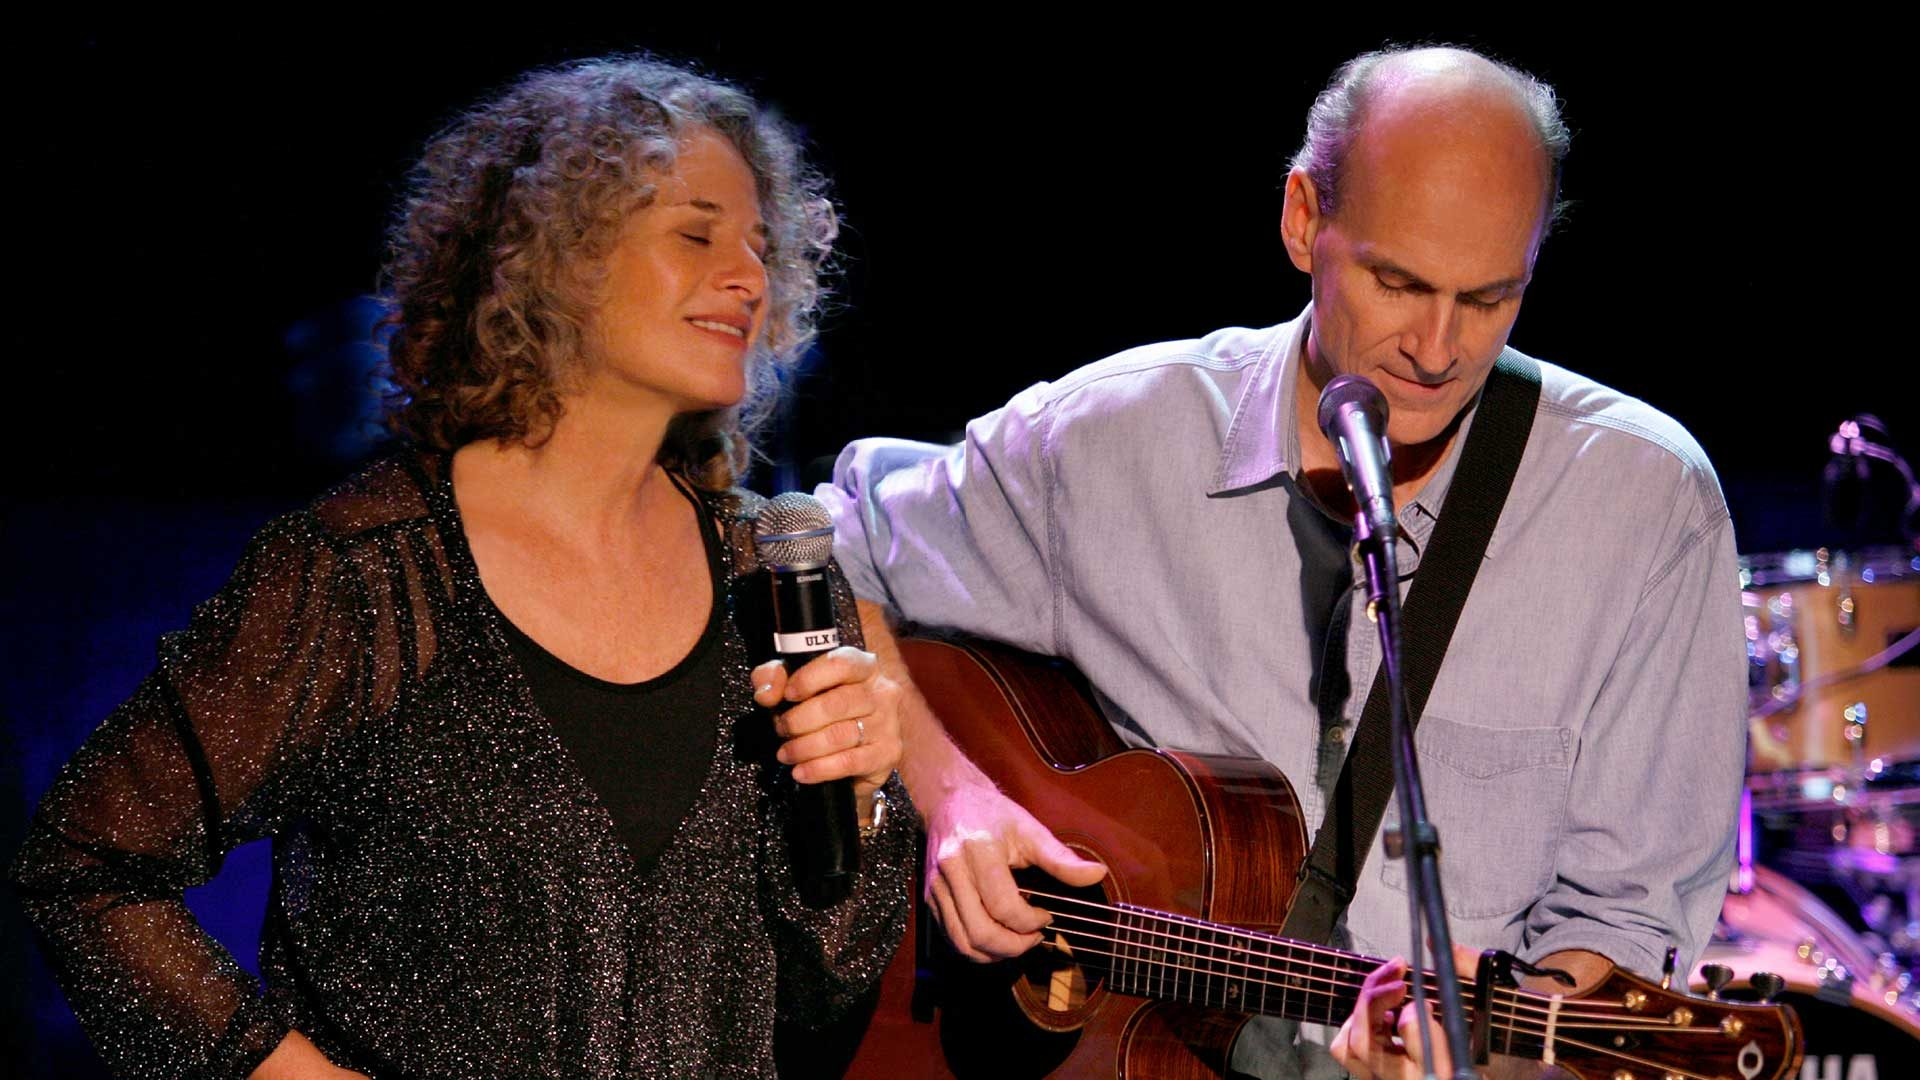 Car Wallpaper Smartphone Carole King James Taylor Live At The Troubadour Twin